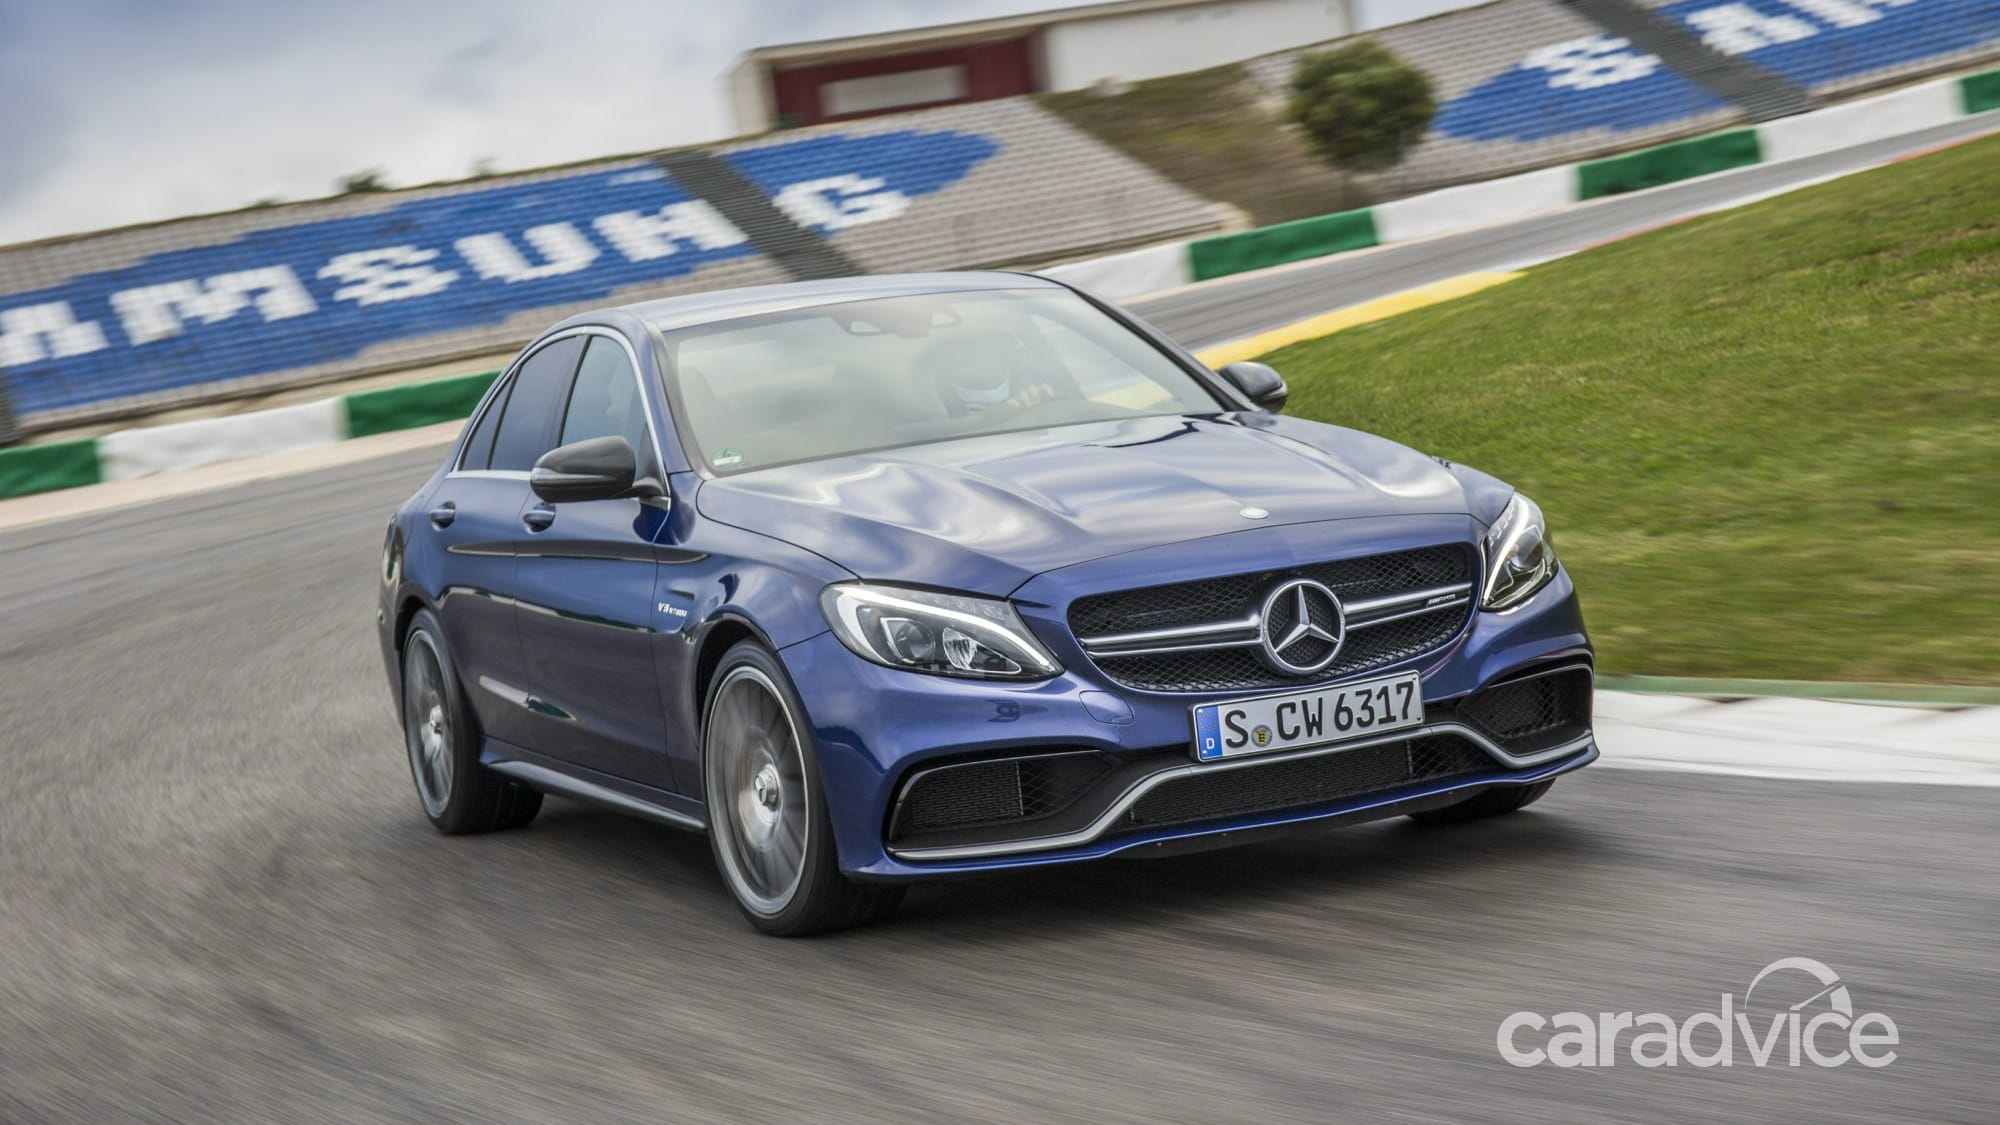 Clements Auto Sales >> 2015 Mercedes-AMG C63 S Review | CarAdvice